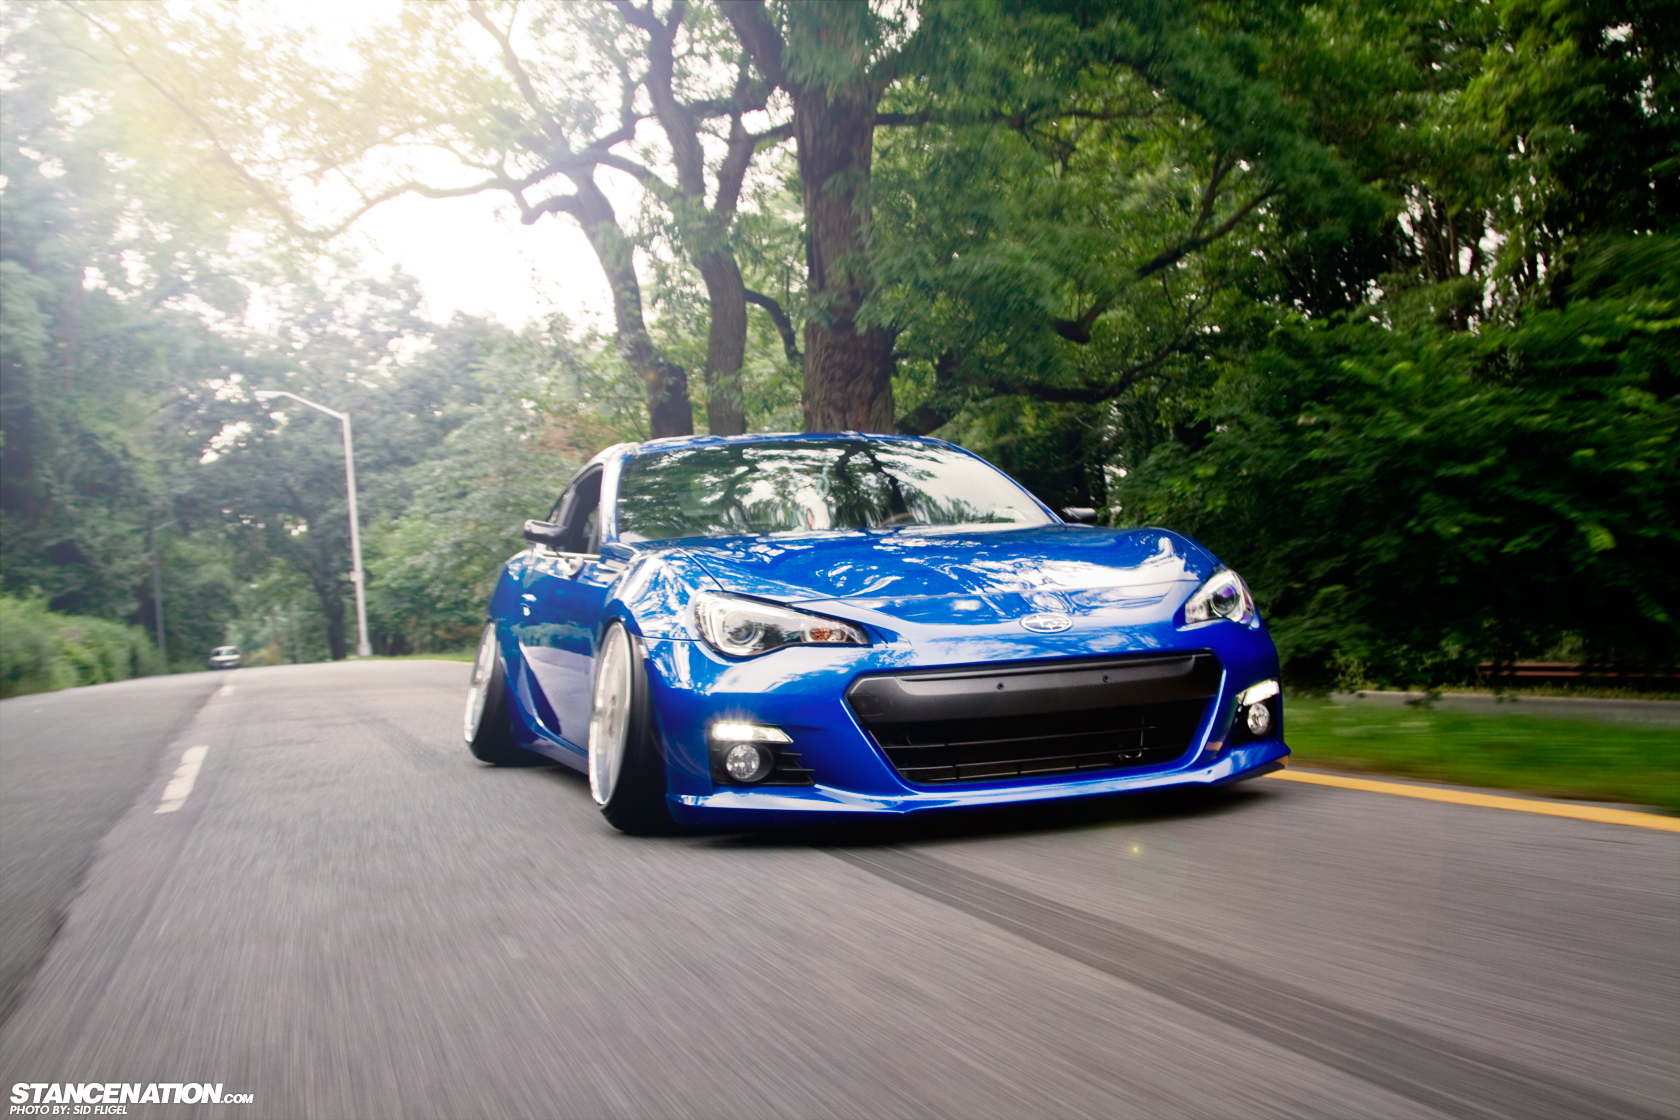 Part Deux // Vic Morales' Bangin' Subaru BRZ  | StanceNation